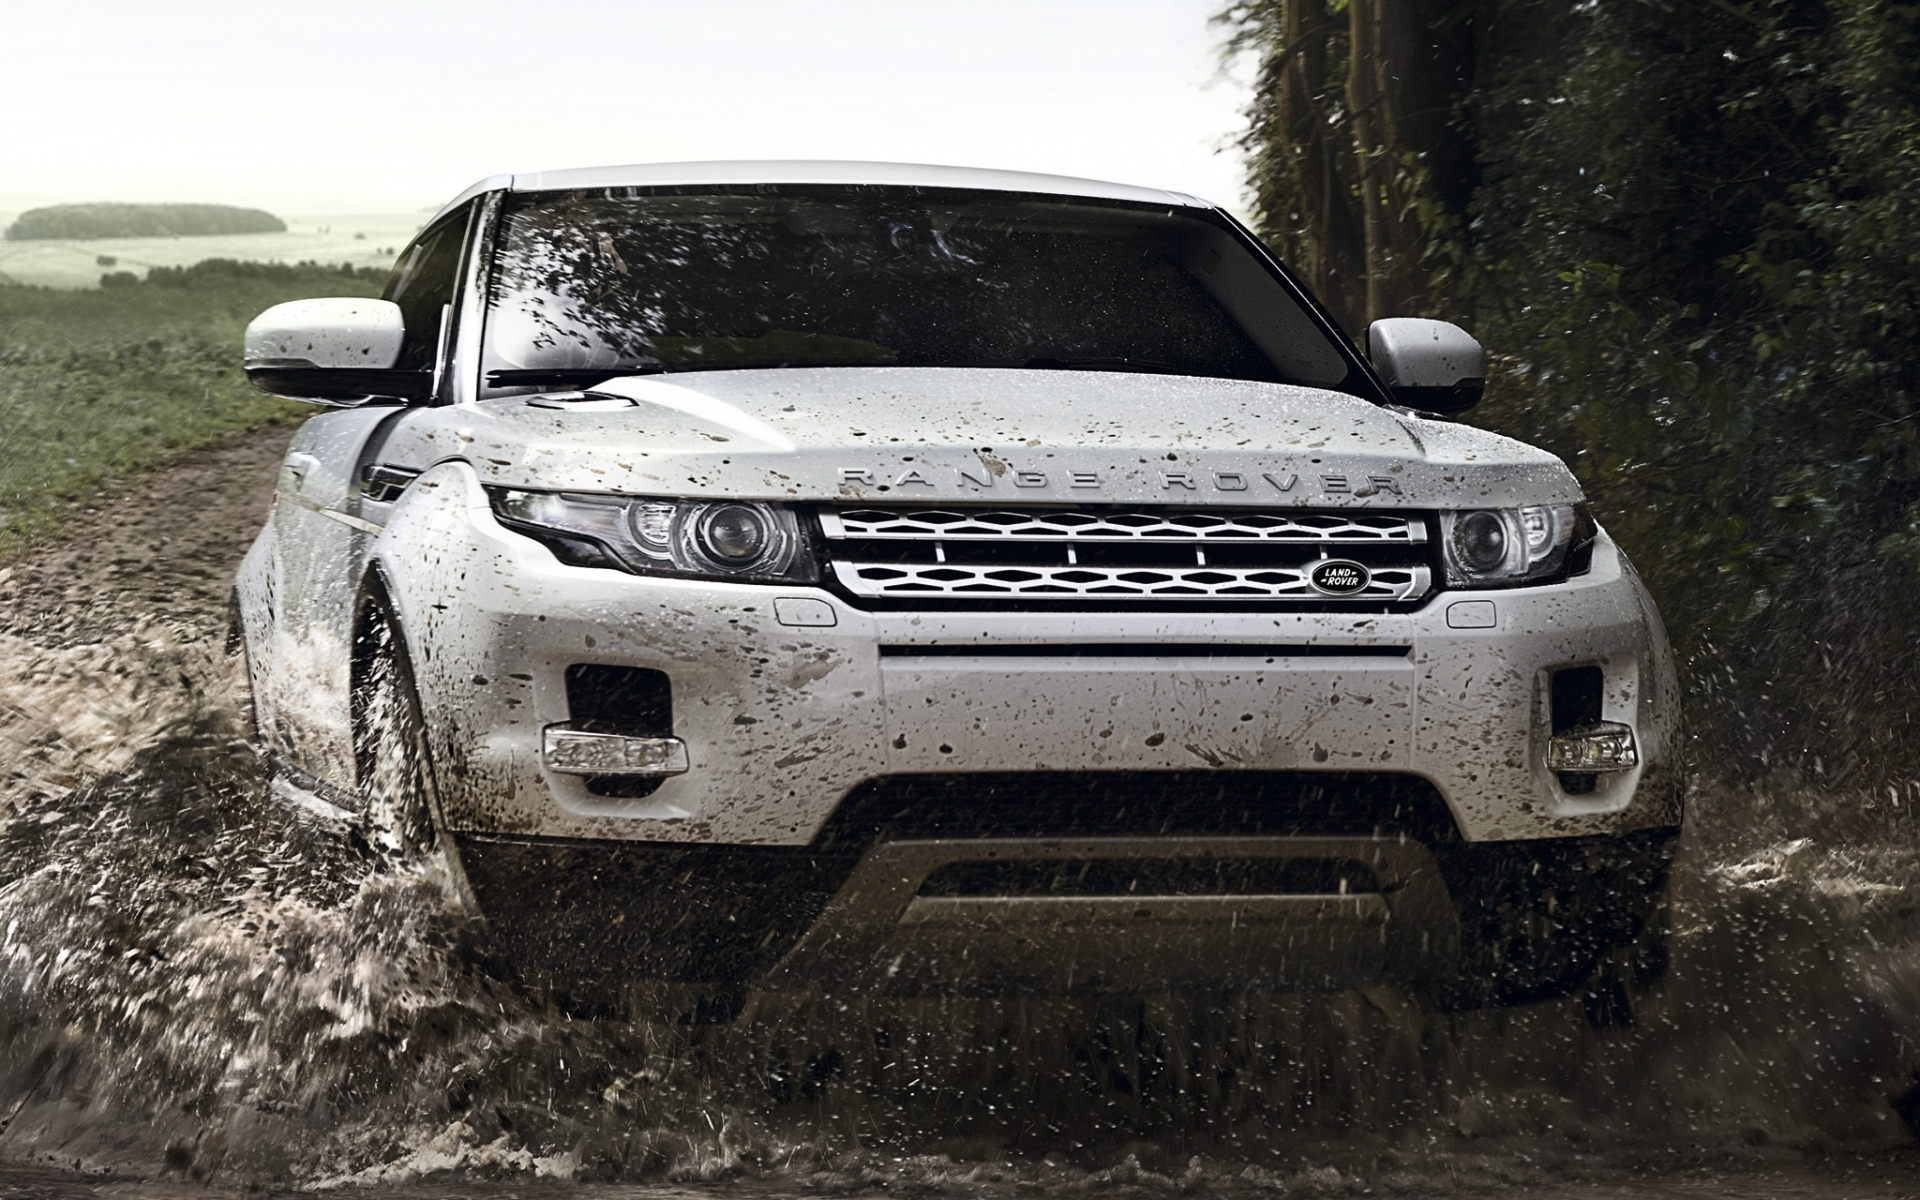 Hd Range Rover Wallpapers Range Rover Background Images For Download